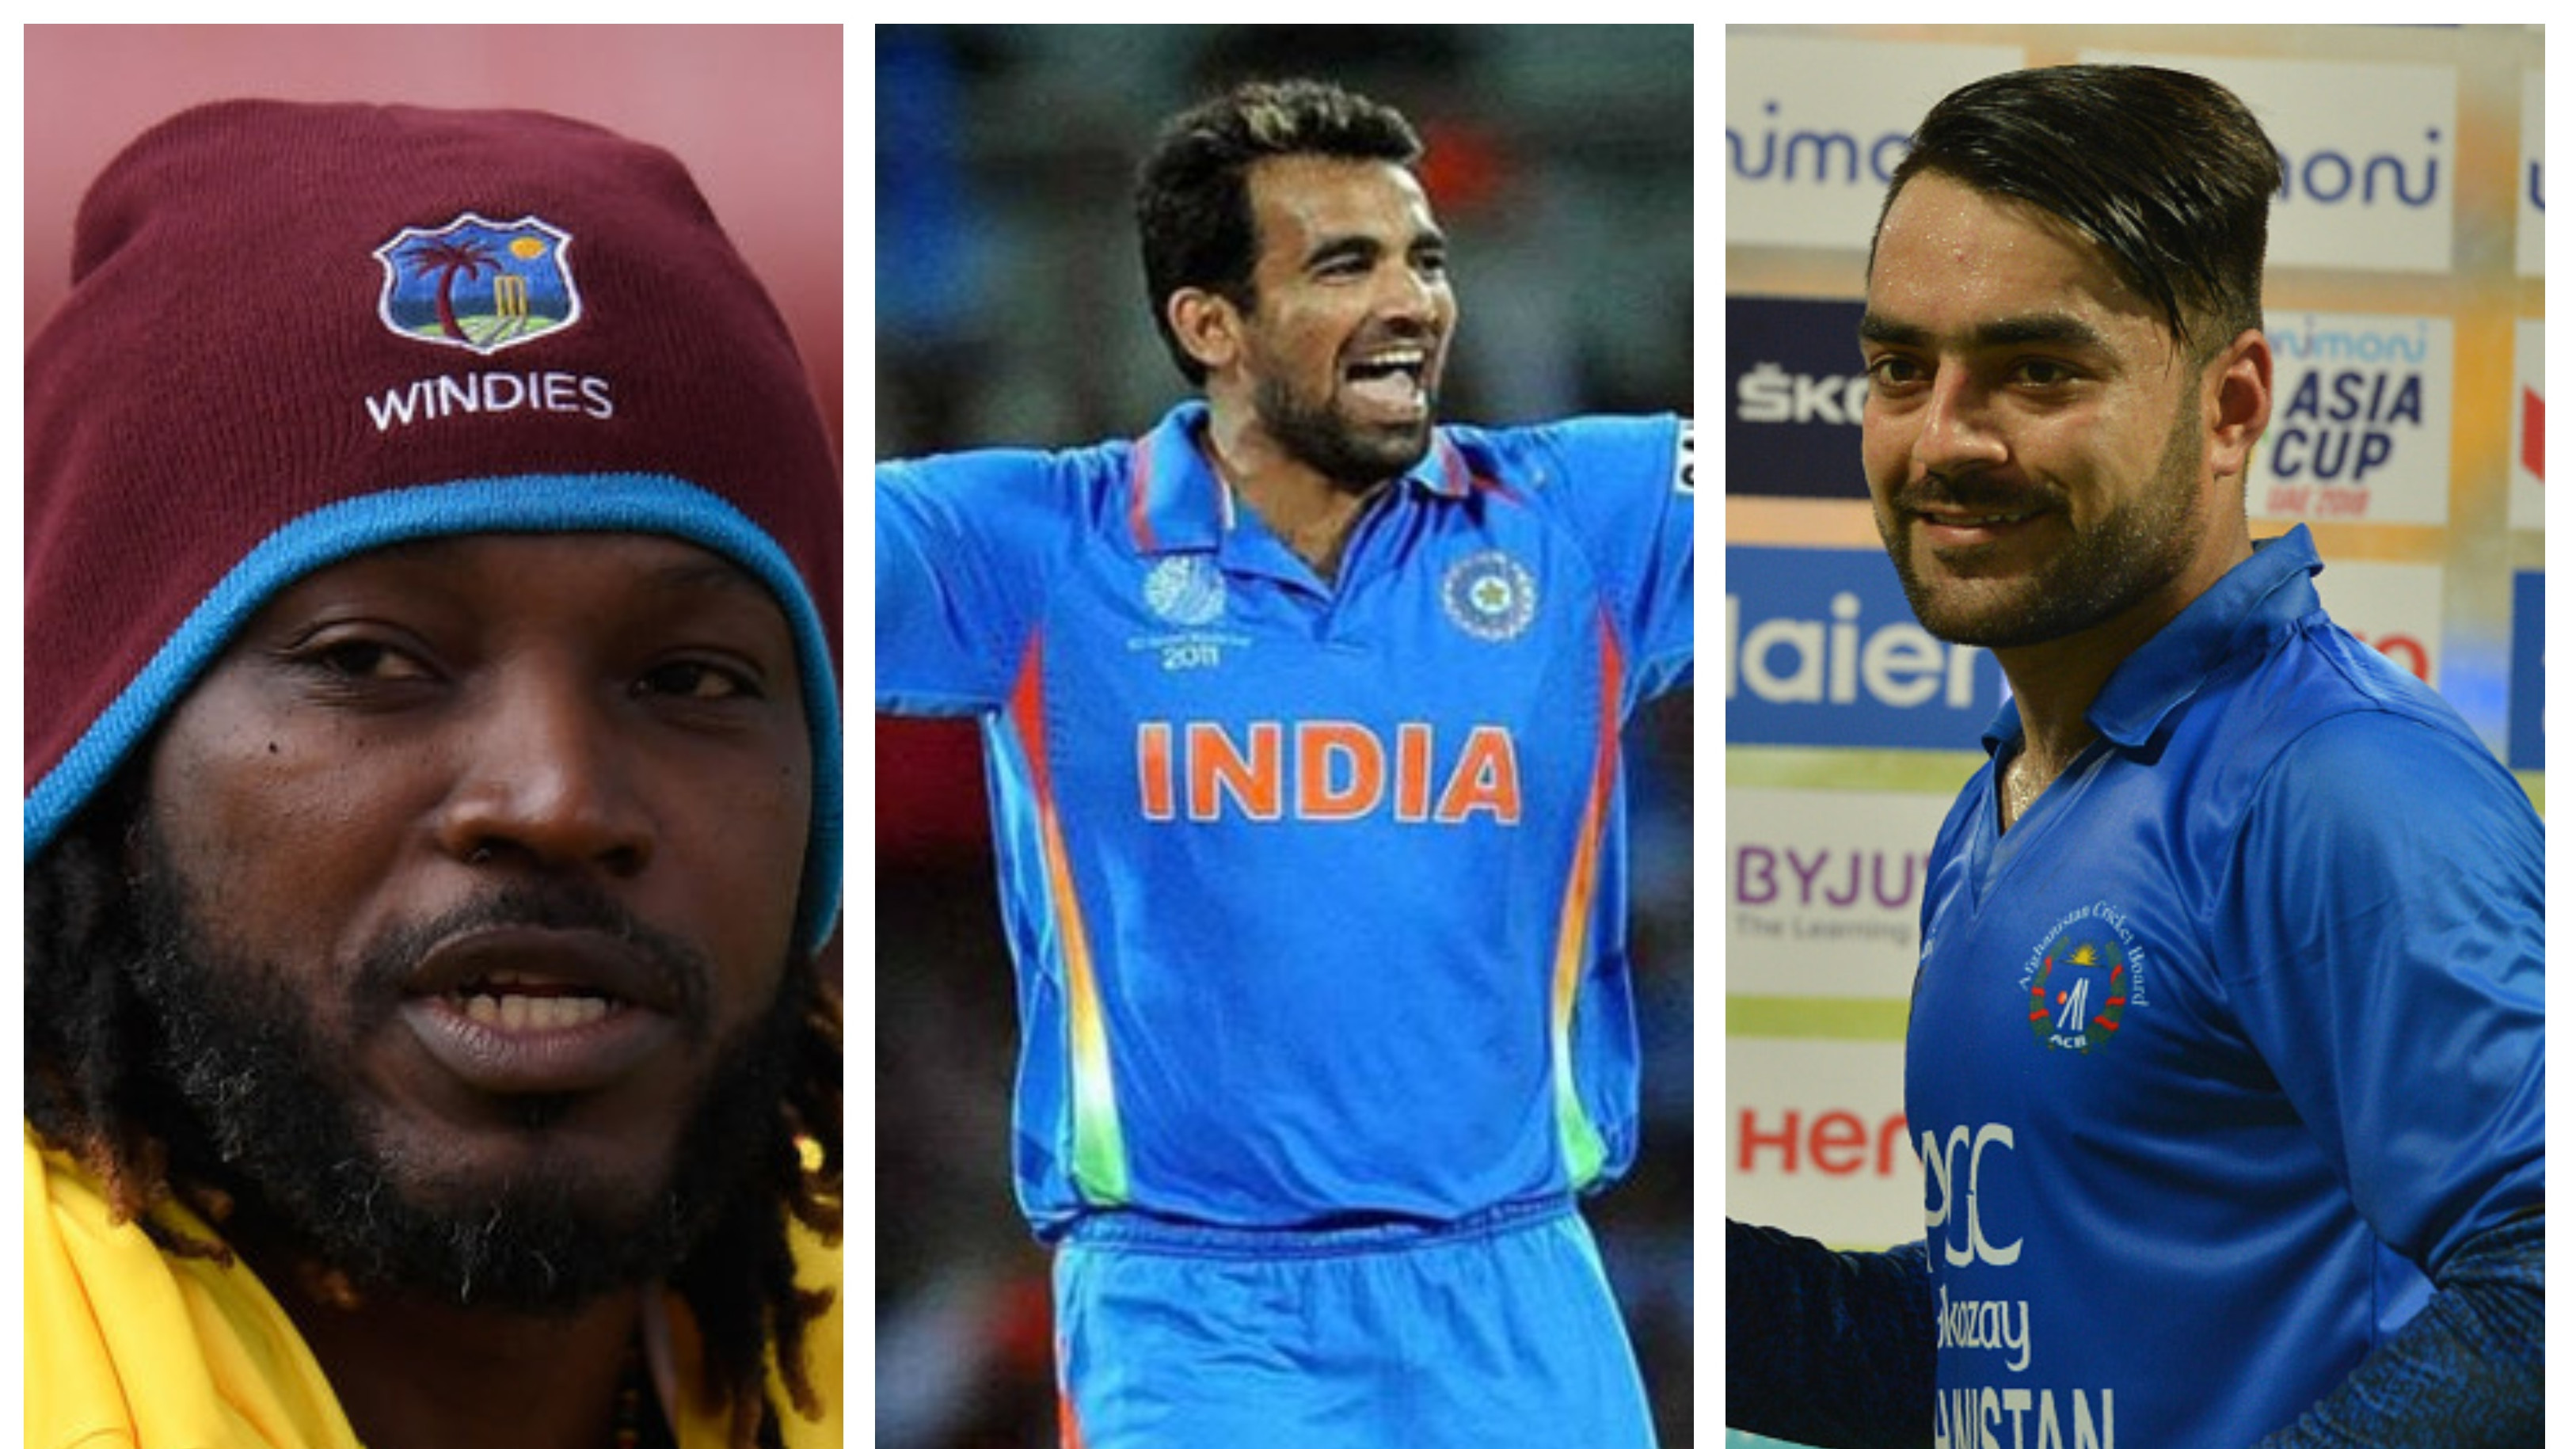 Zaheer Khan, Chris Gayle, Rashid Khan and other big names to feature in second edition of the T10 league